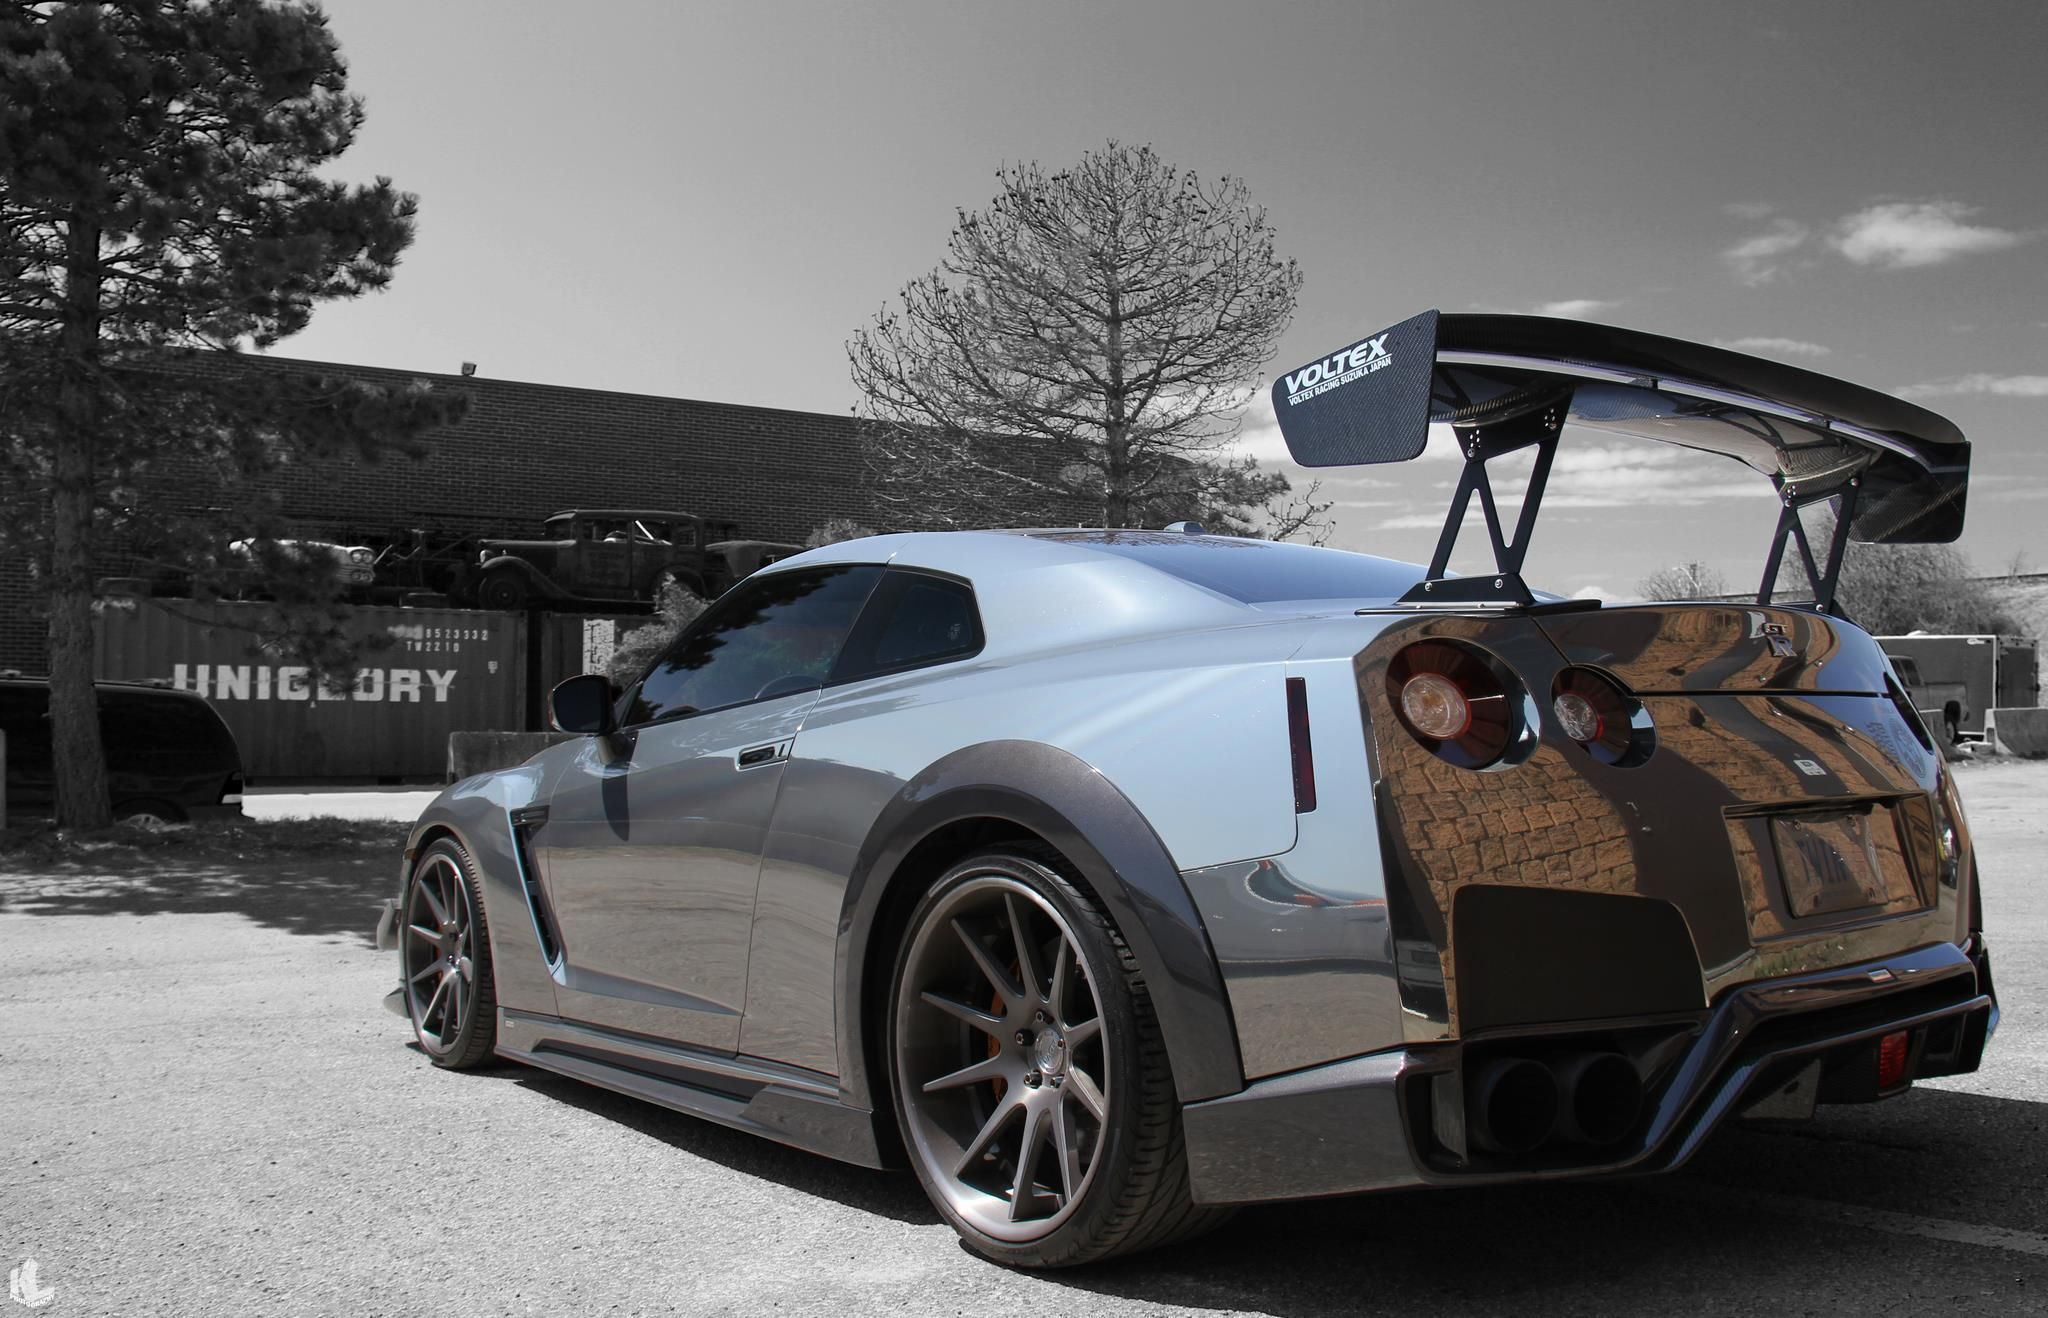 nissan skyline gt r r35 gtr pinterest nissan skyline gt skyline gt and nissan skyline. Black Bedroom Furniture Sets. Home Design Ideas